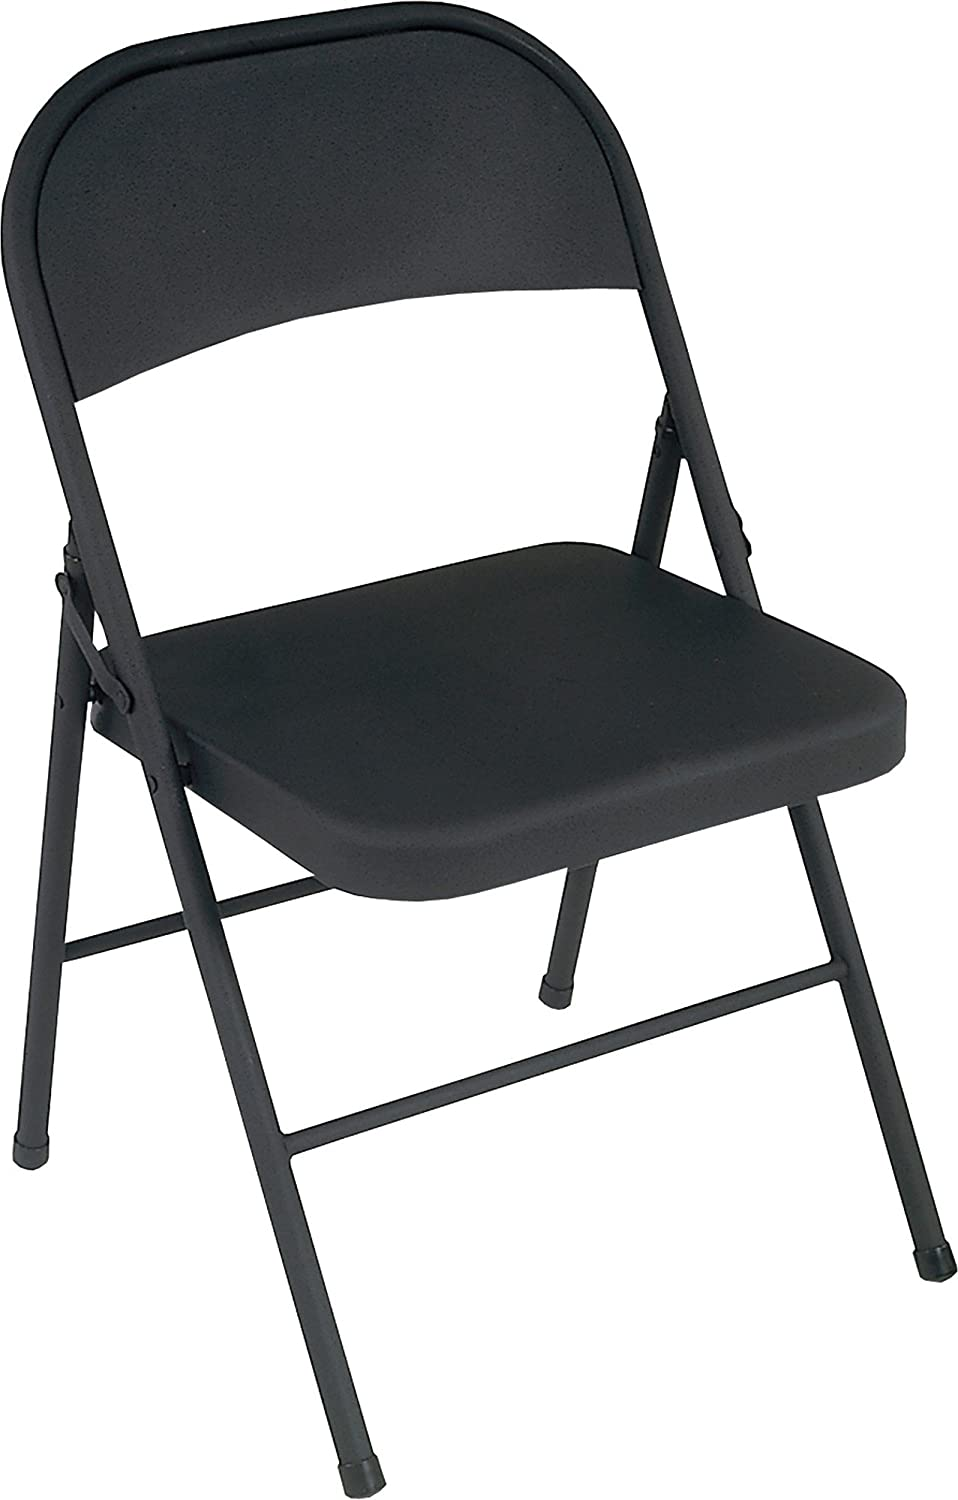 Black Resin Folding Chairs images